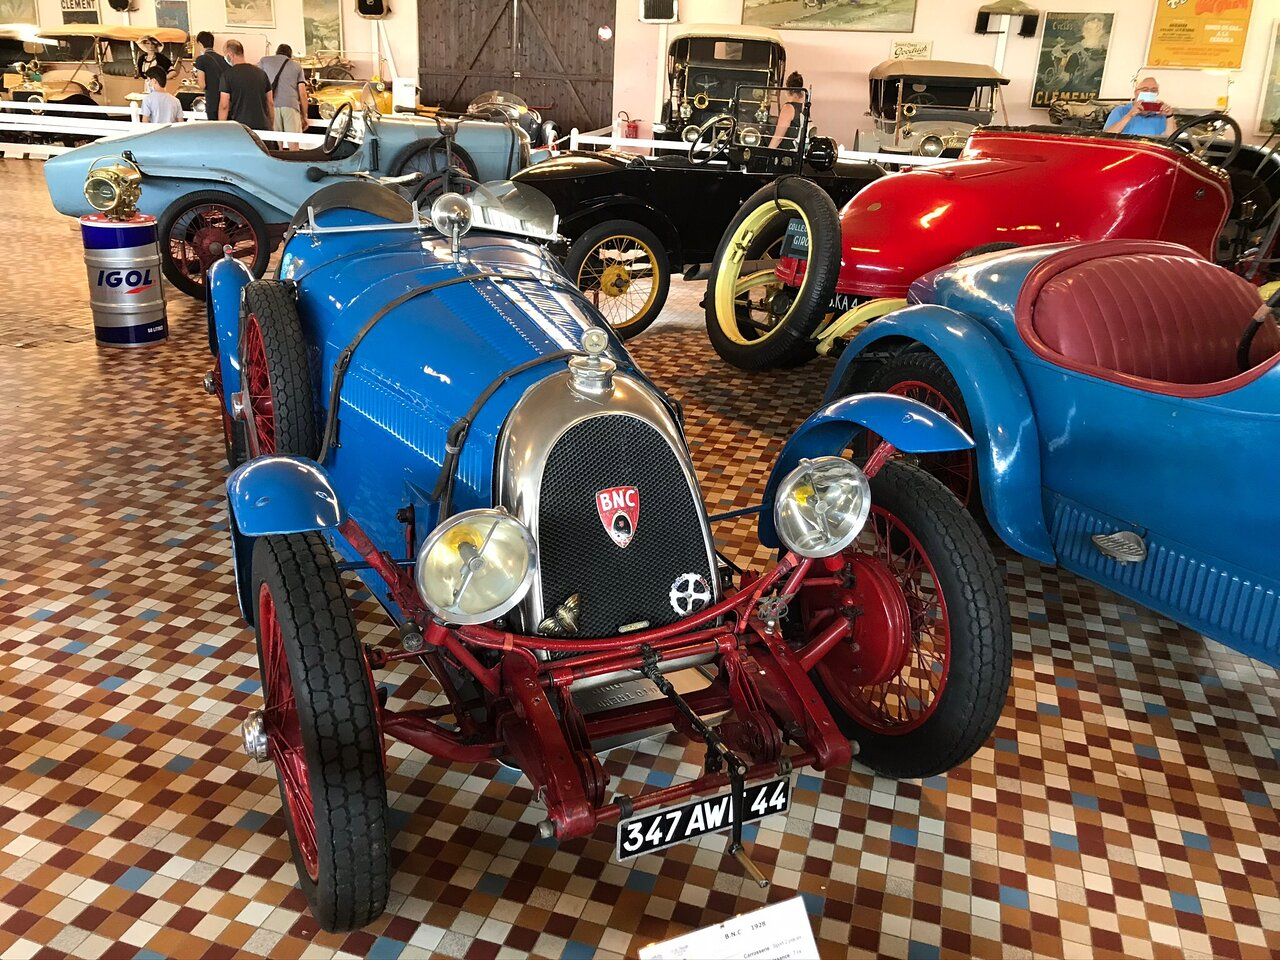 Musee Automobile De Vendee Talmont Saint Hilaire 2020 All You Need To Know Before You Go With Photos Tripadvisor